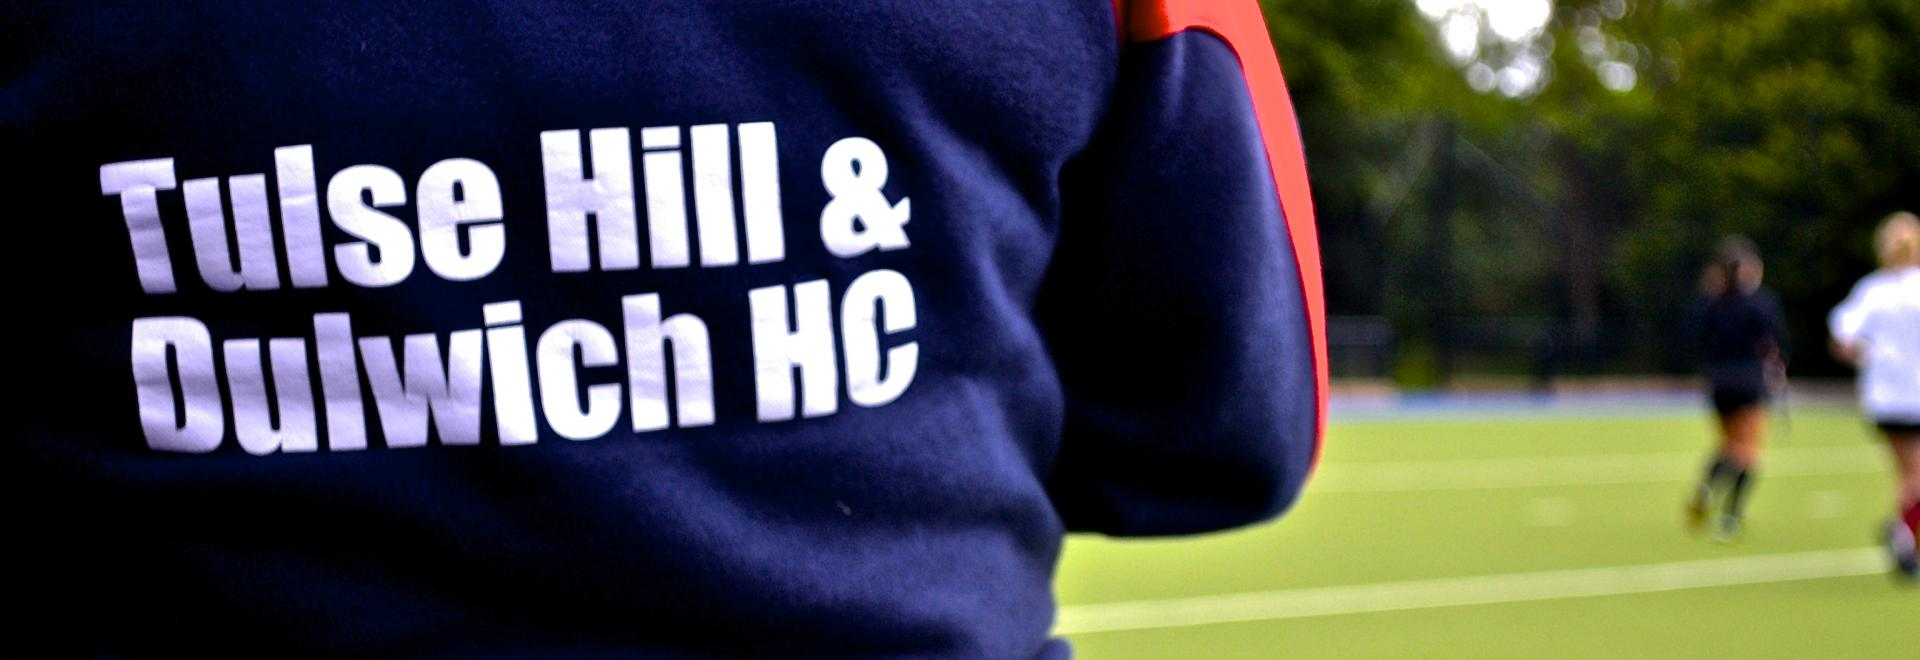 Close up of Tulse Hill hoody